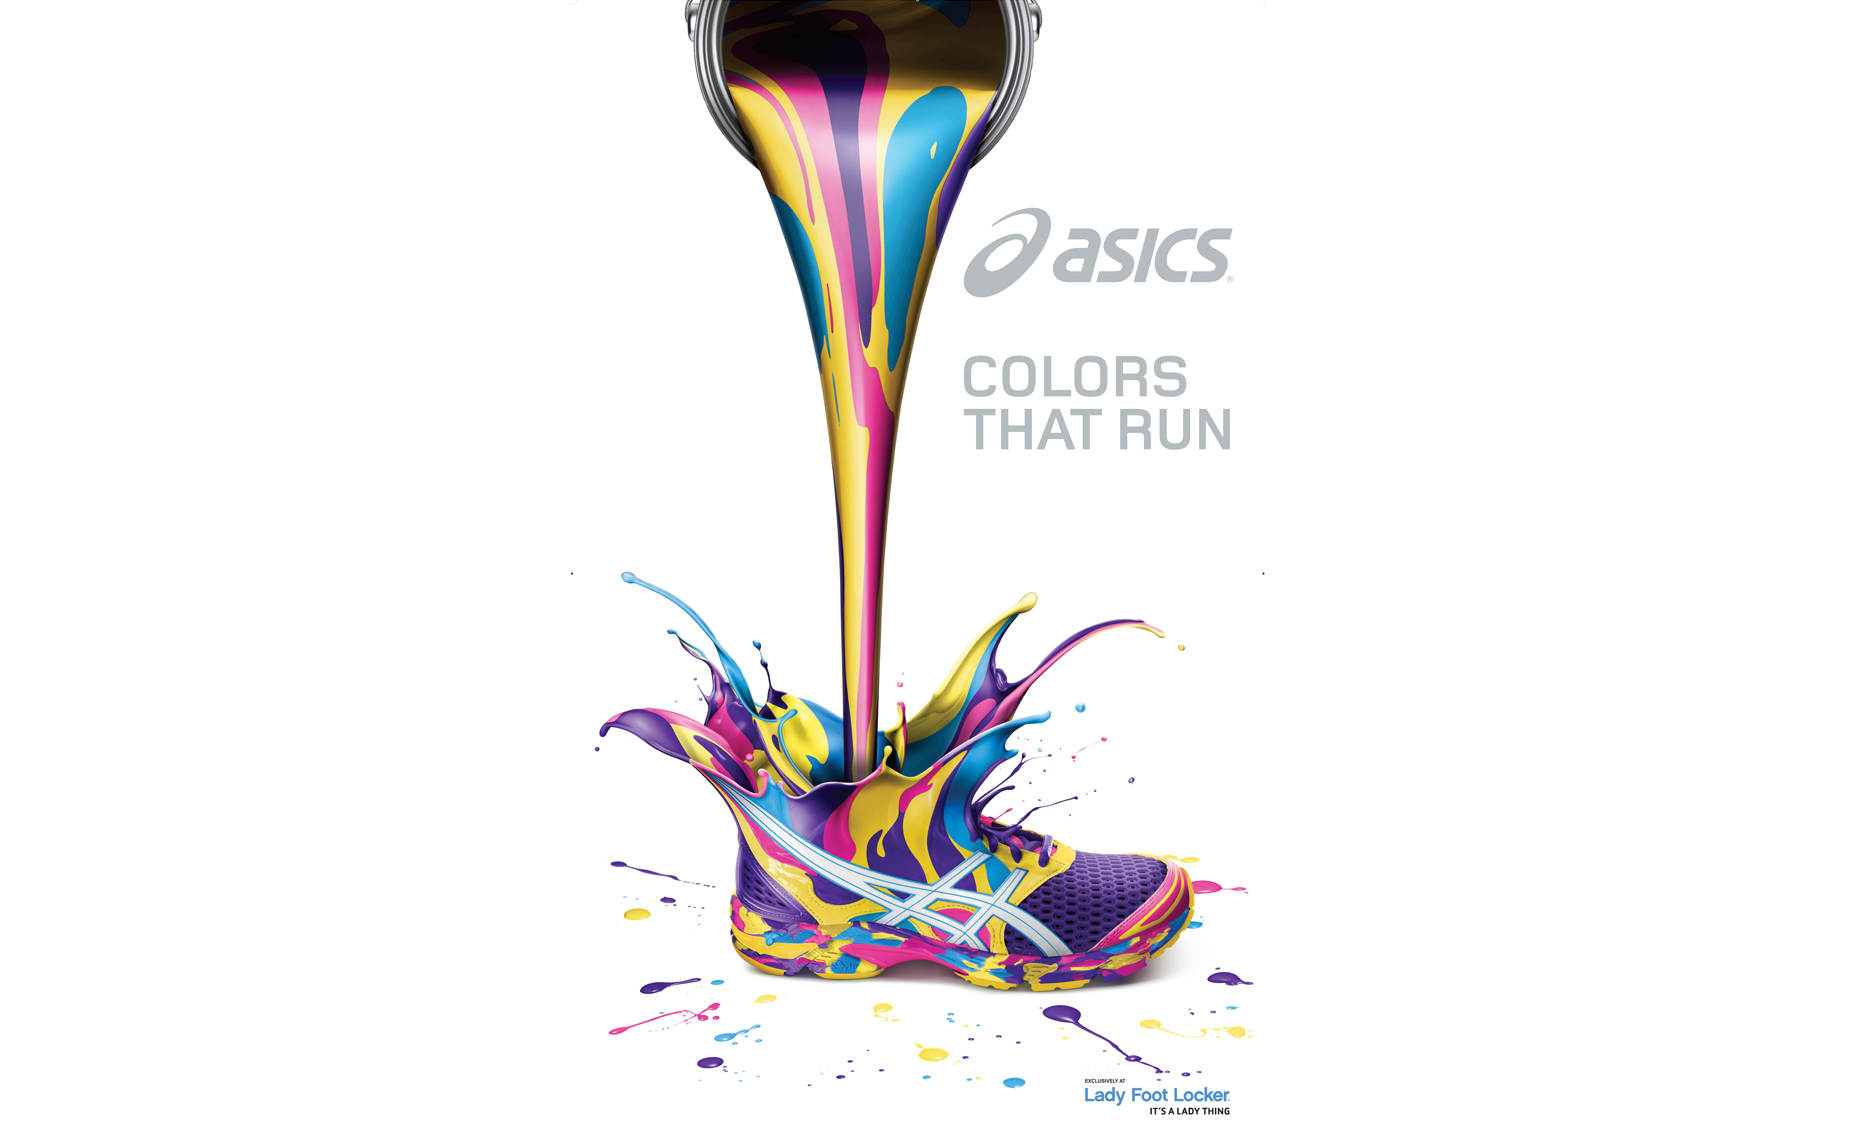 Ascis Colors That Run